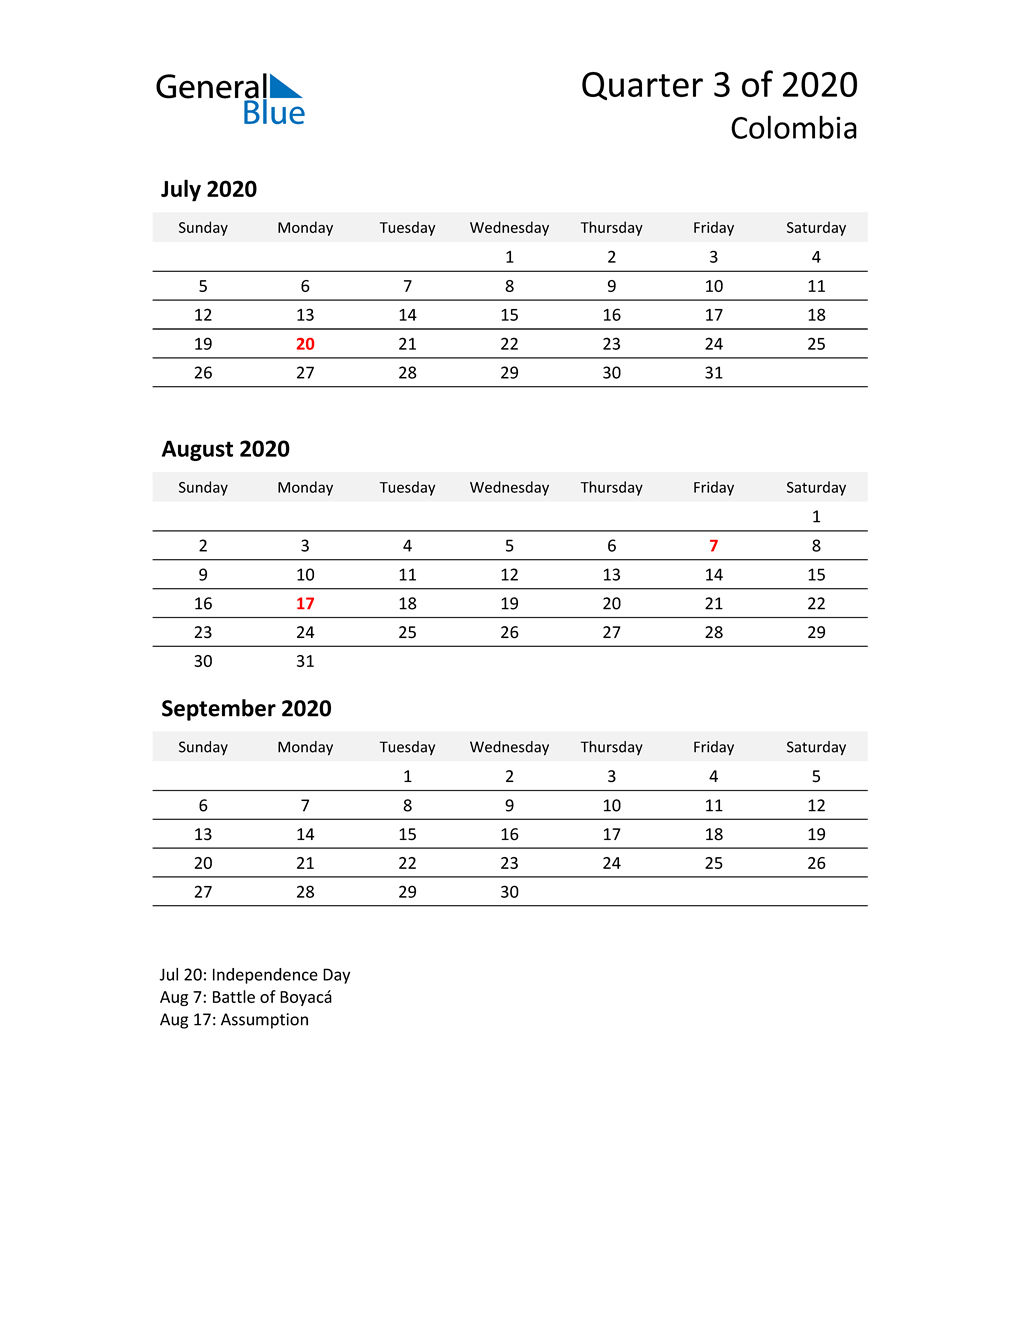 2020 Three-Month Calendar for Colombia